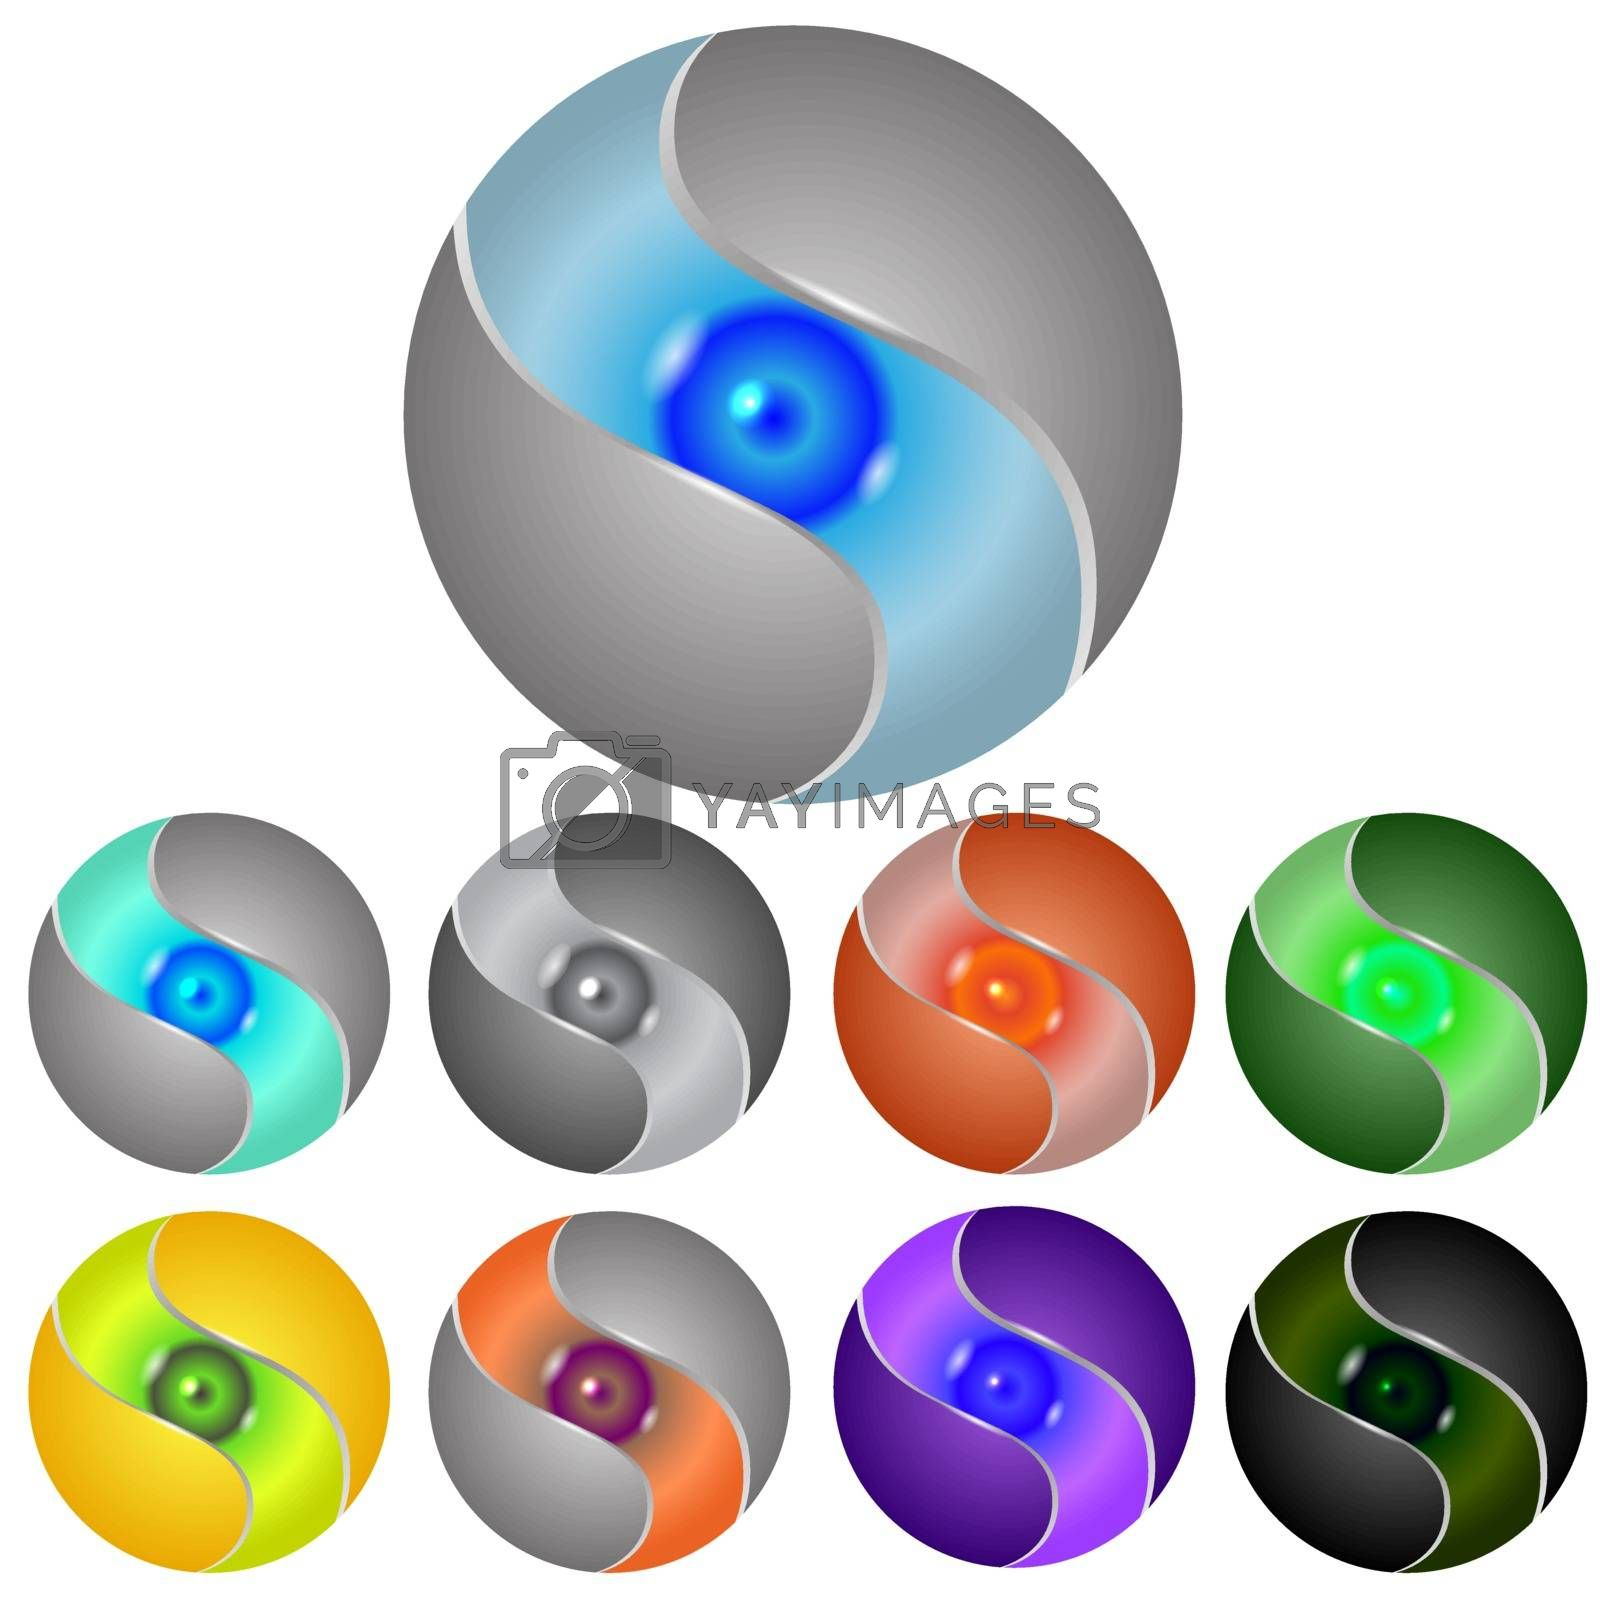 Set of Different Spheres by valeo5